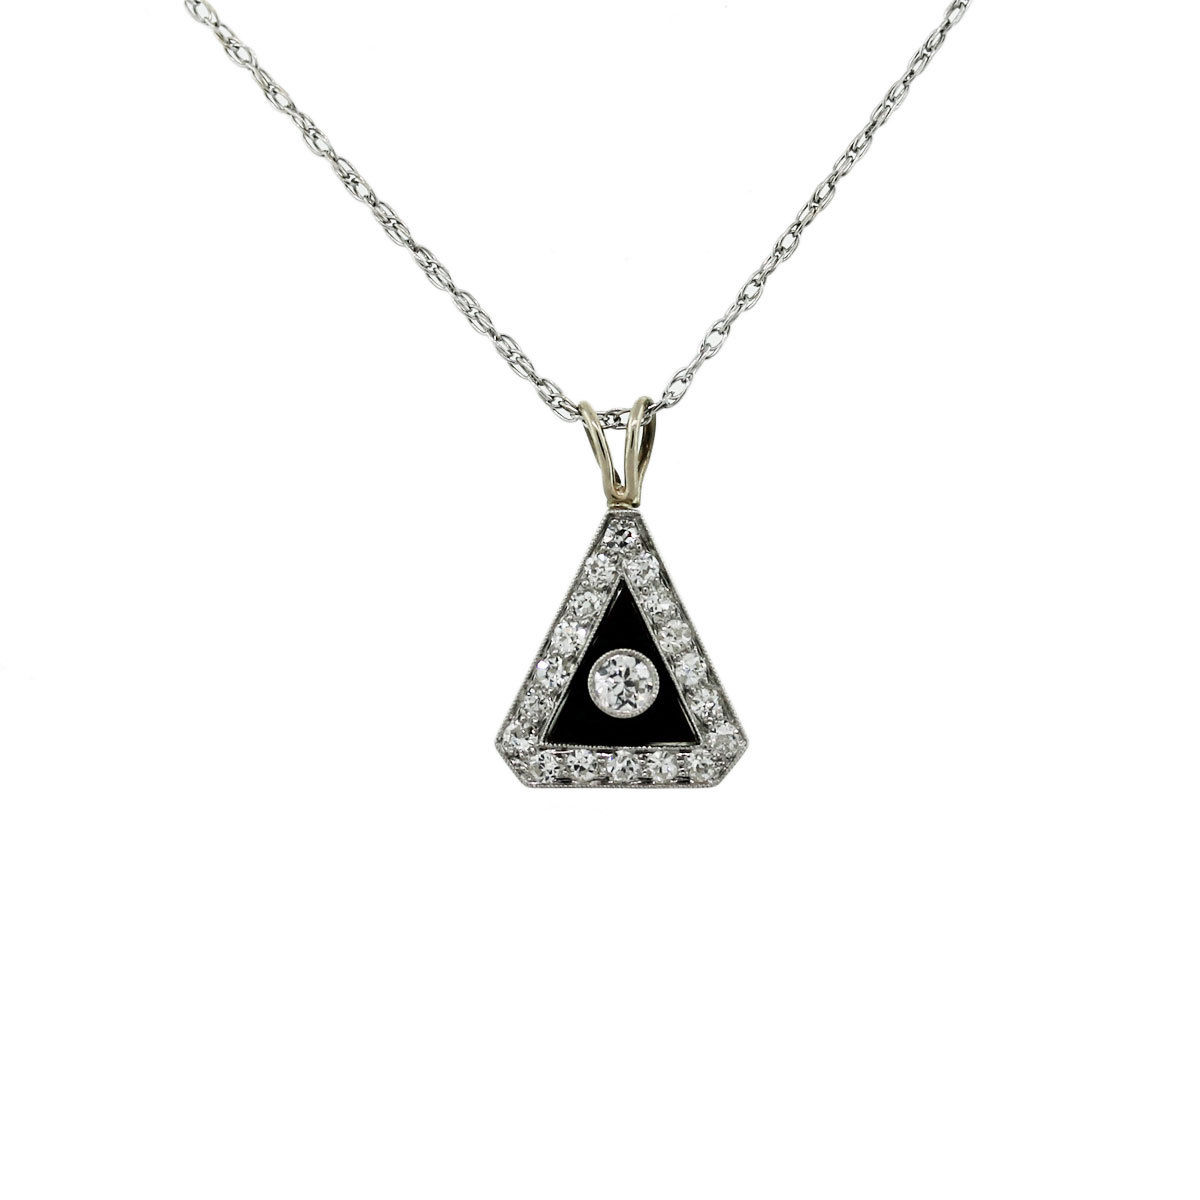 Onyx 14k White Gold Pendant and Chain Necklace